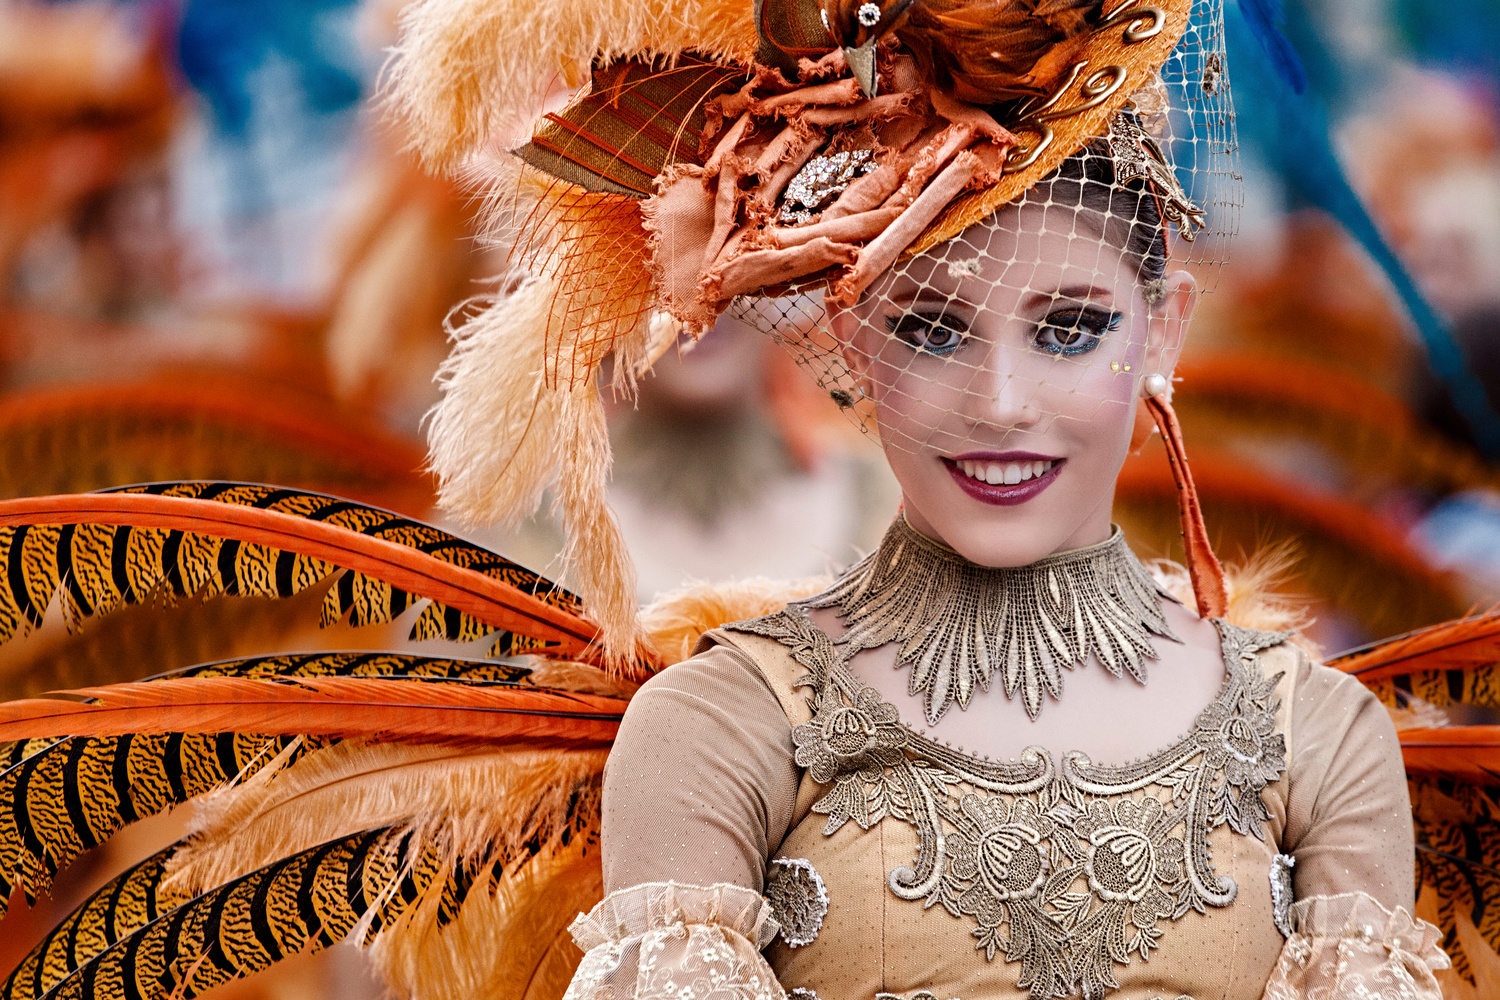 Smile of Carnival by Vicente Concha